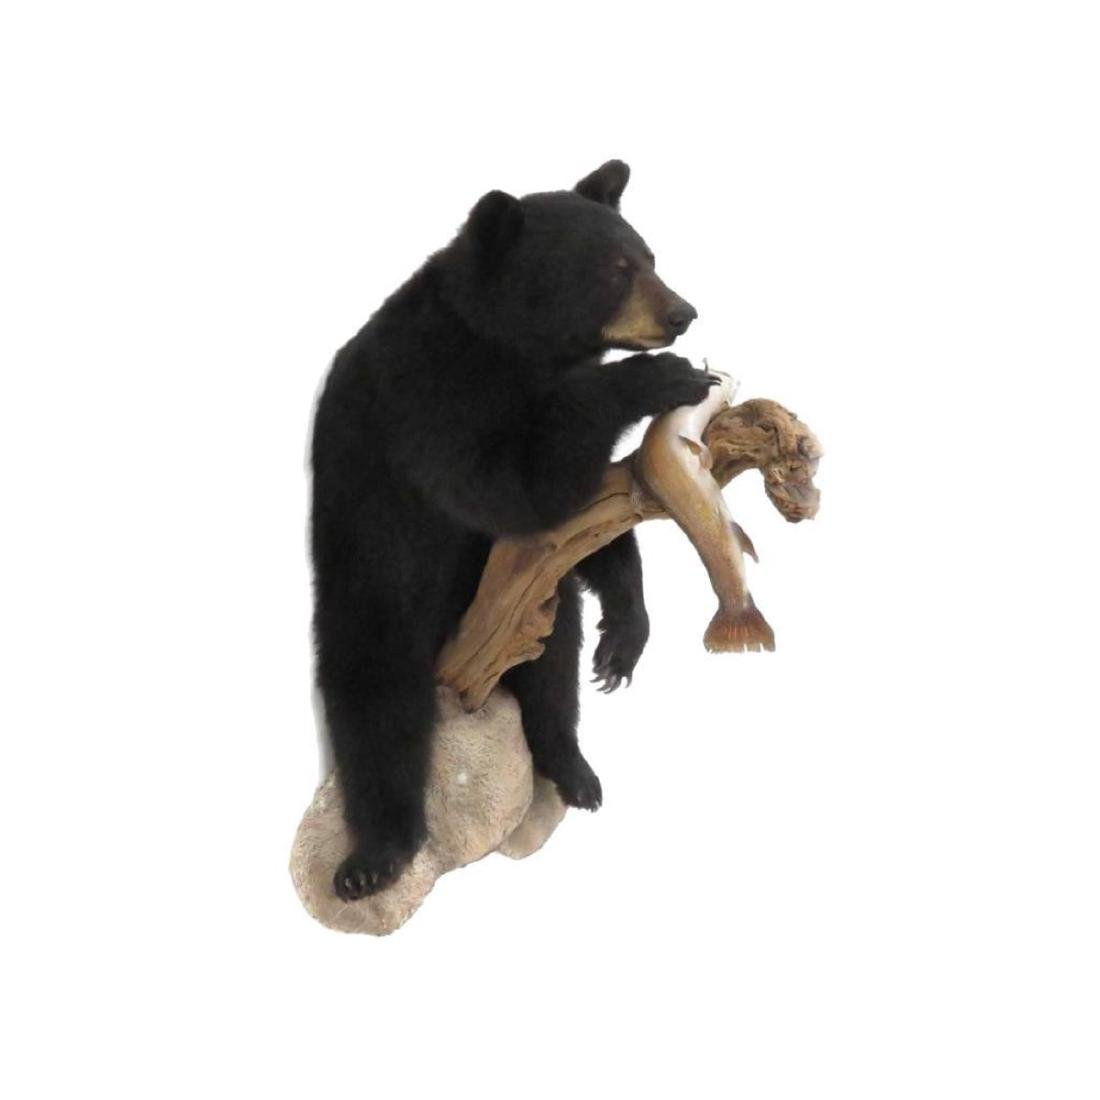 Full Body Black Bear With Fish Trophy Wall Mount